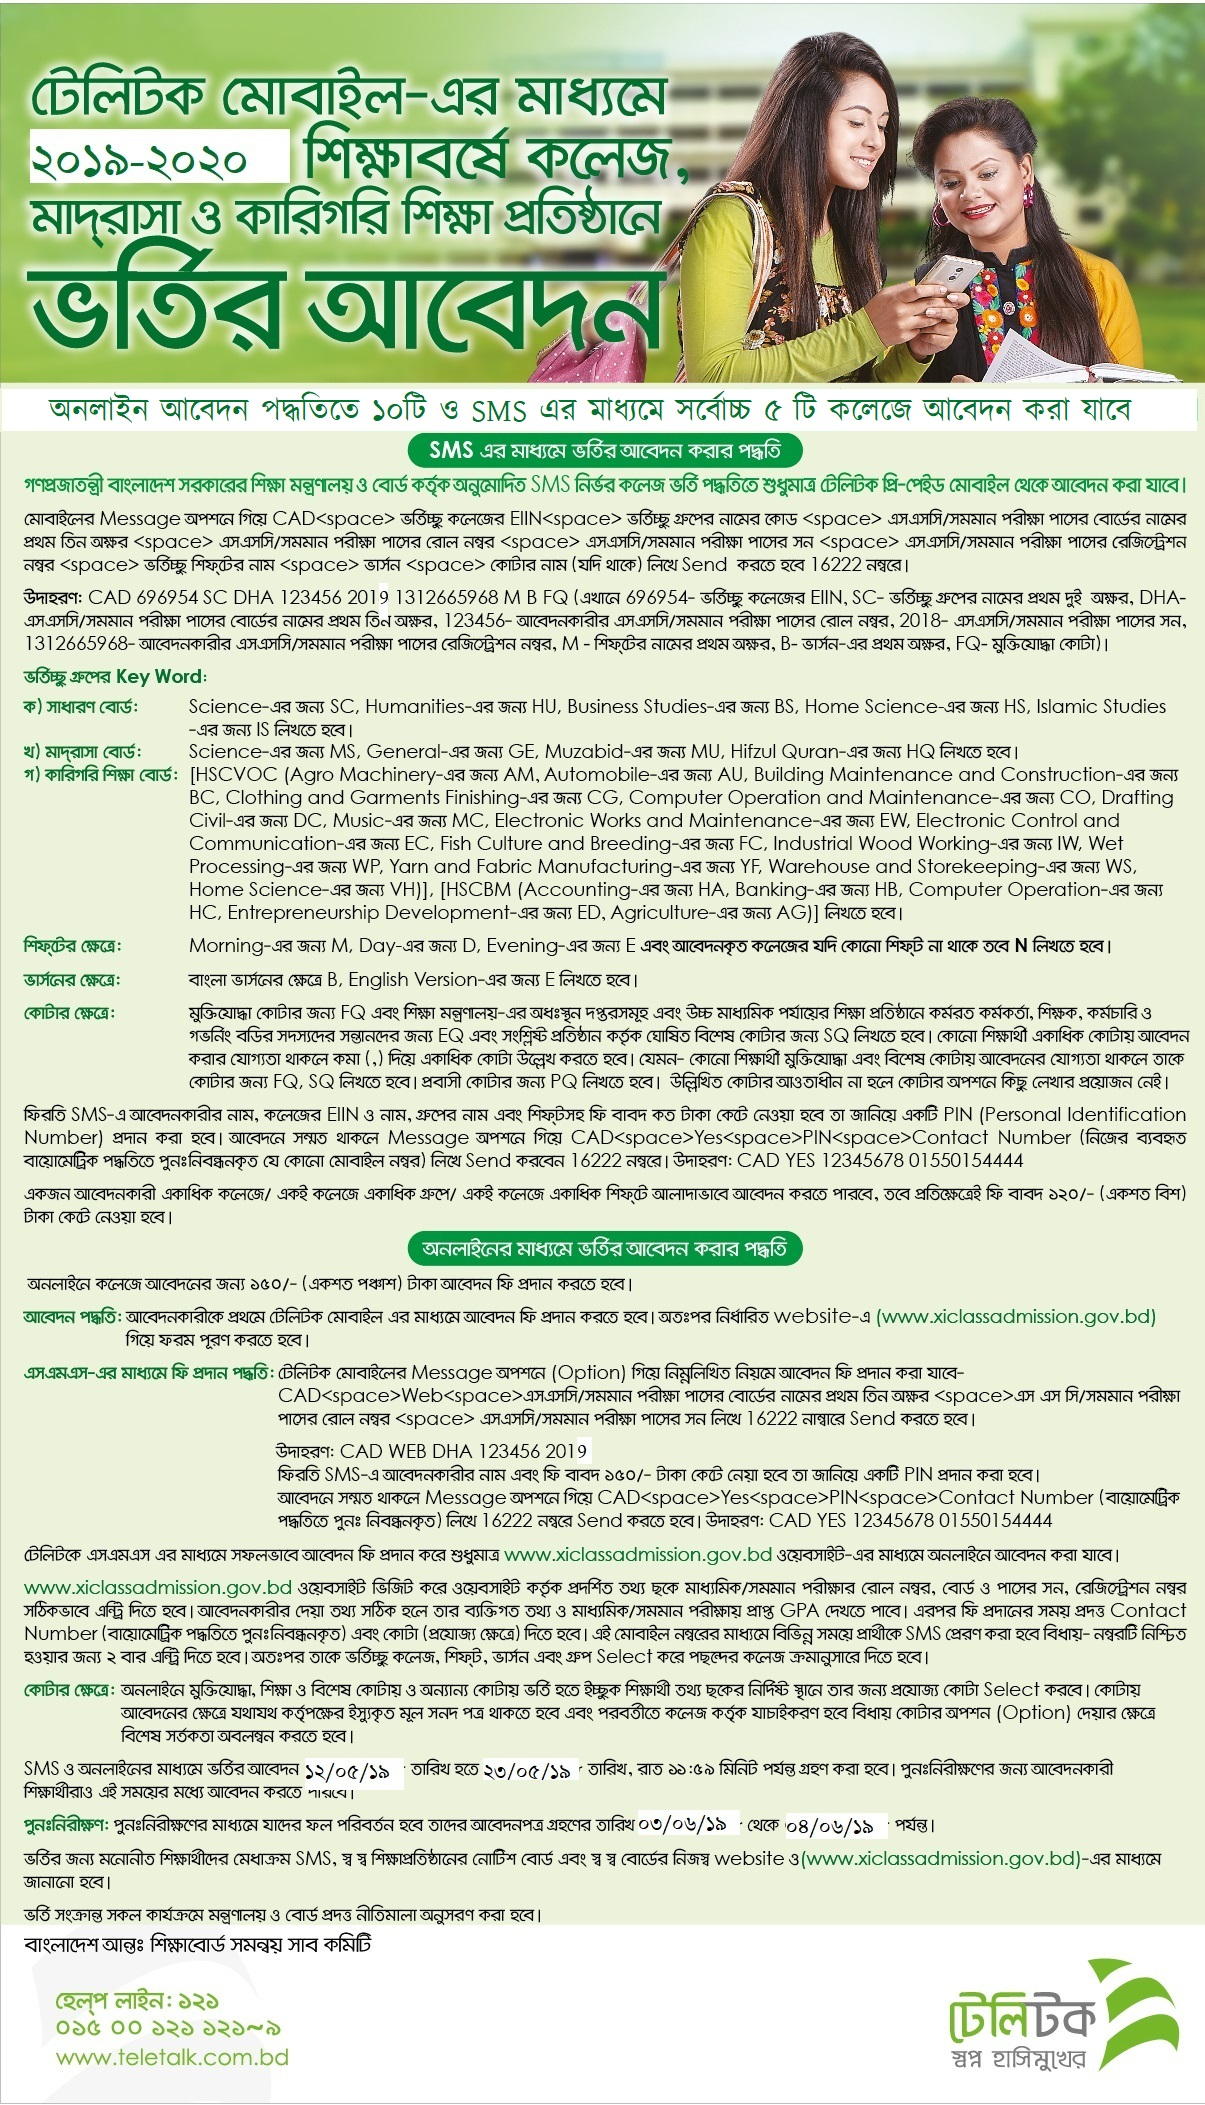 teletalk hsc admission process